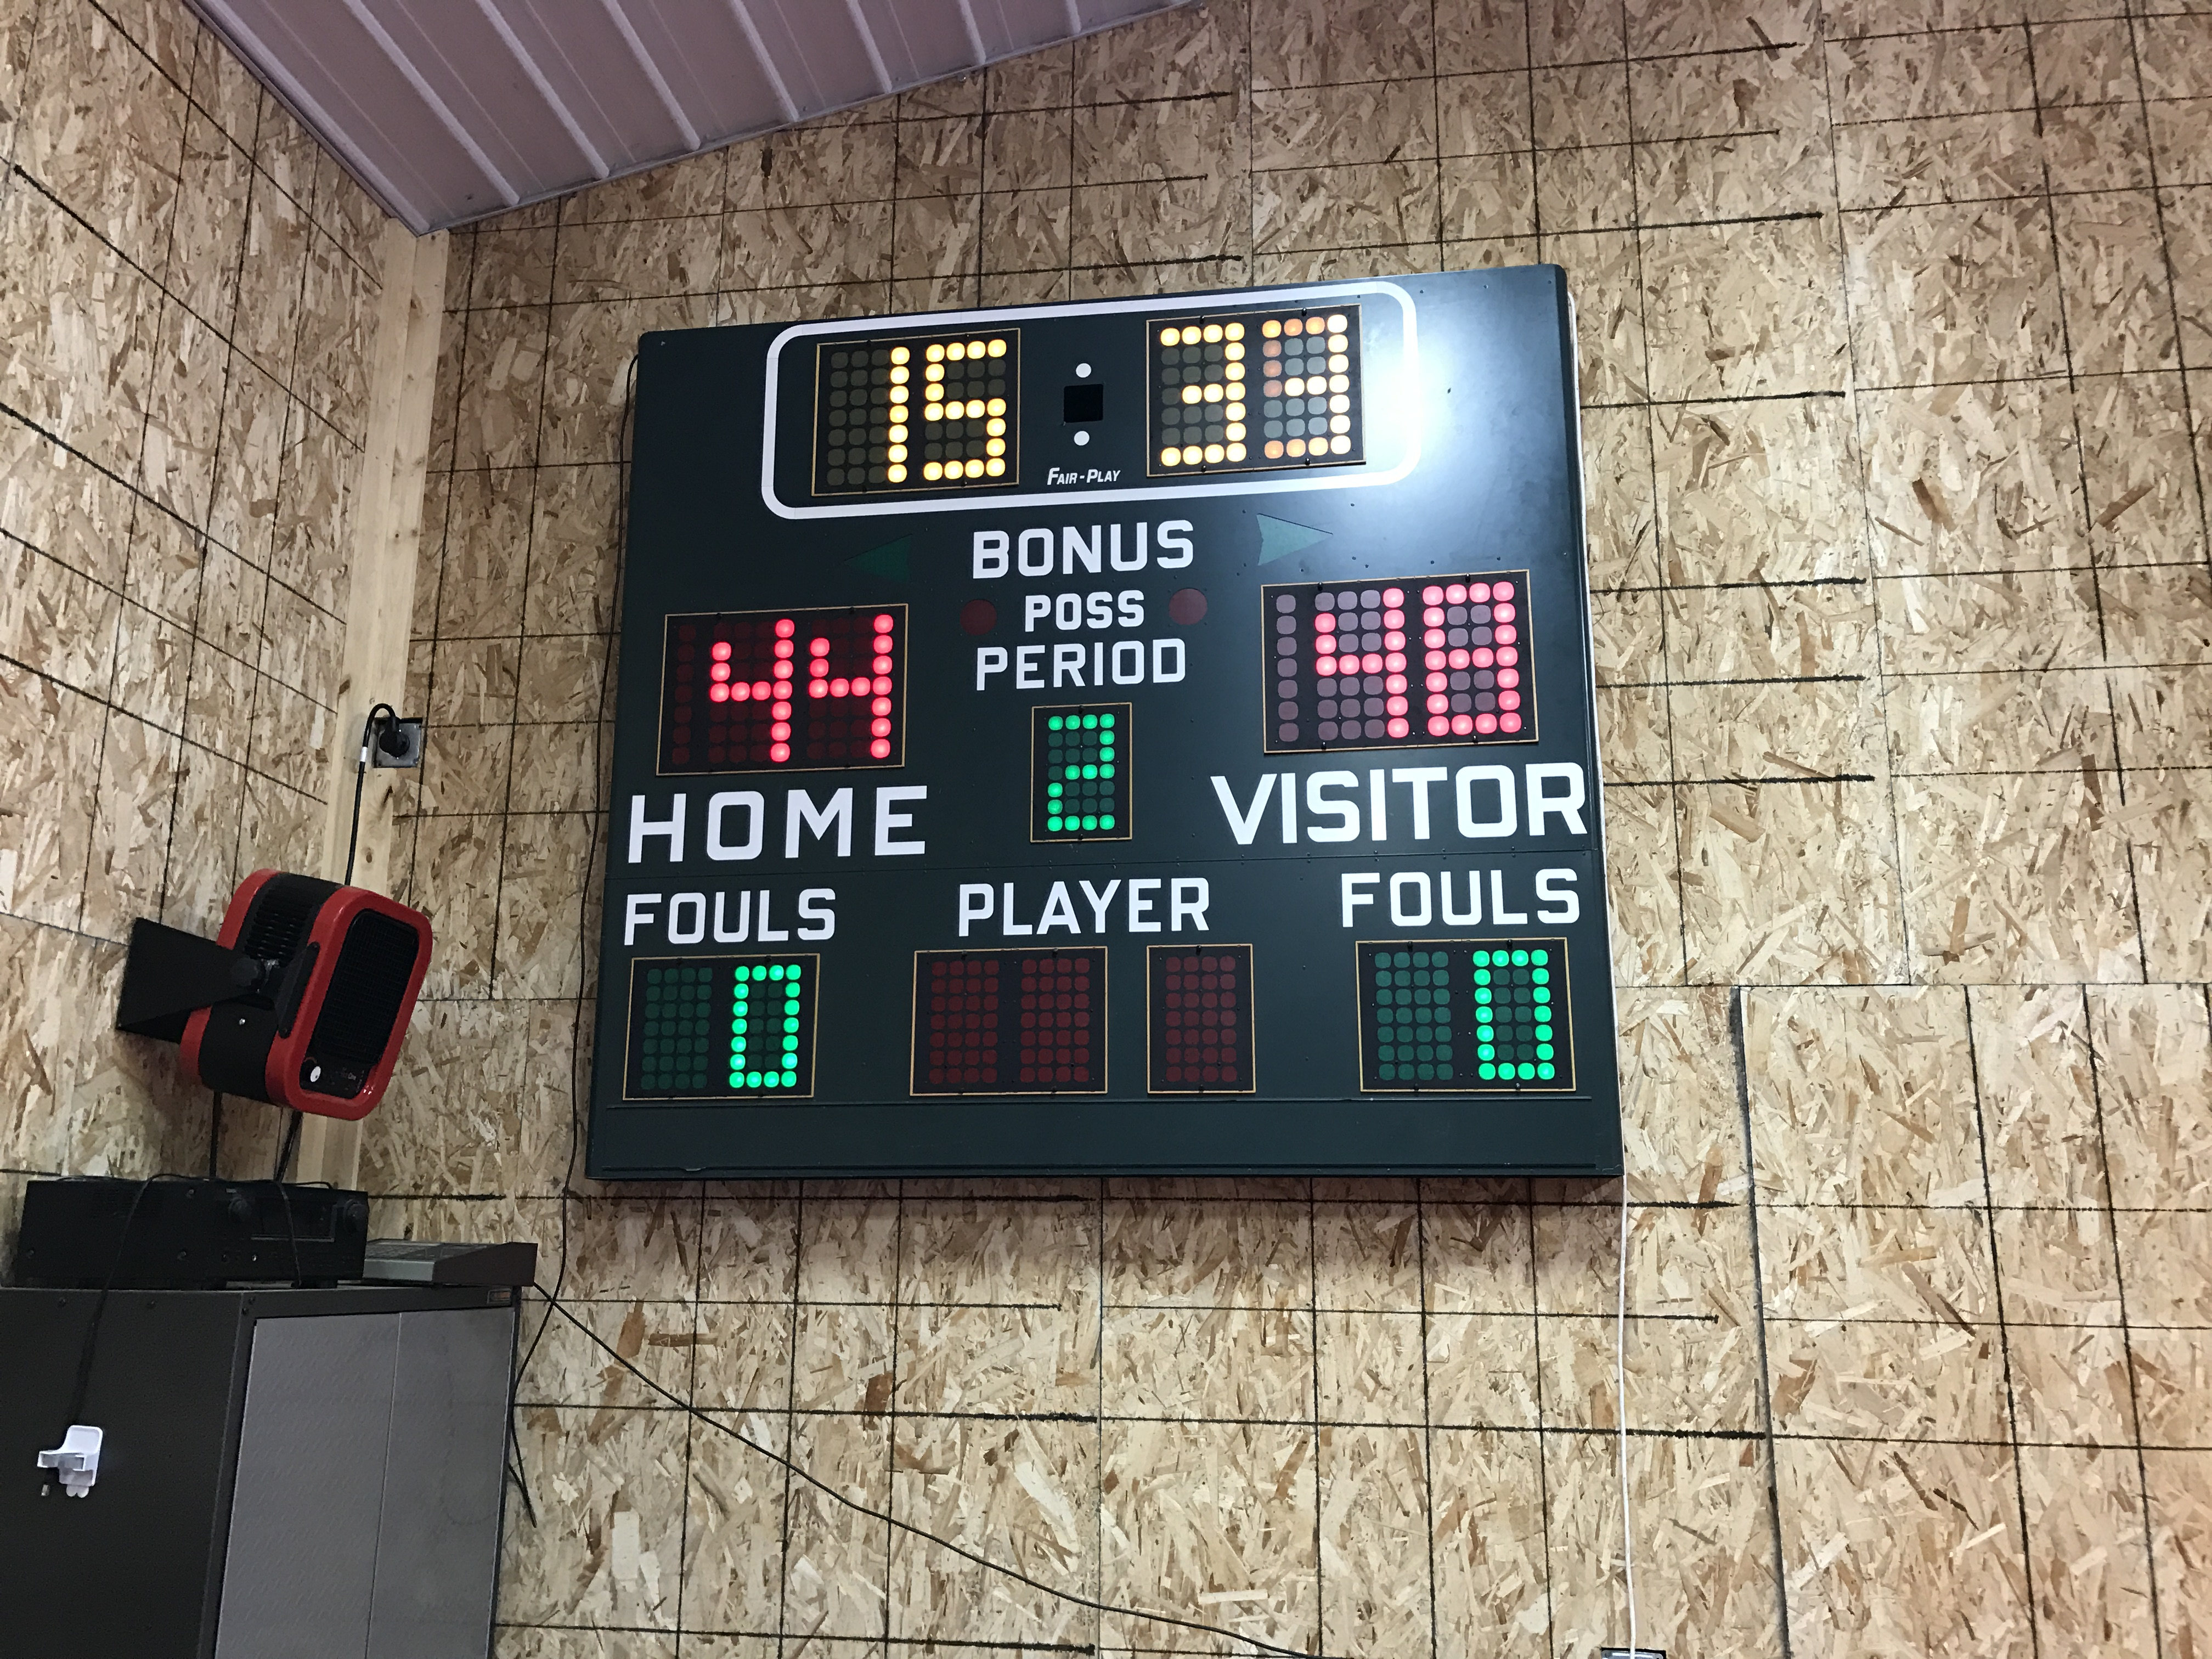 Fairplay basketball scoreboard